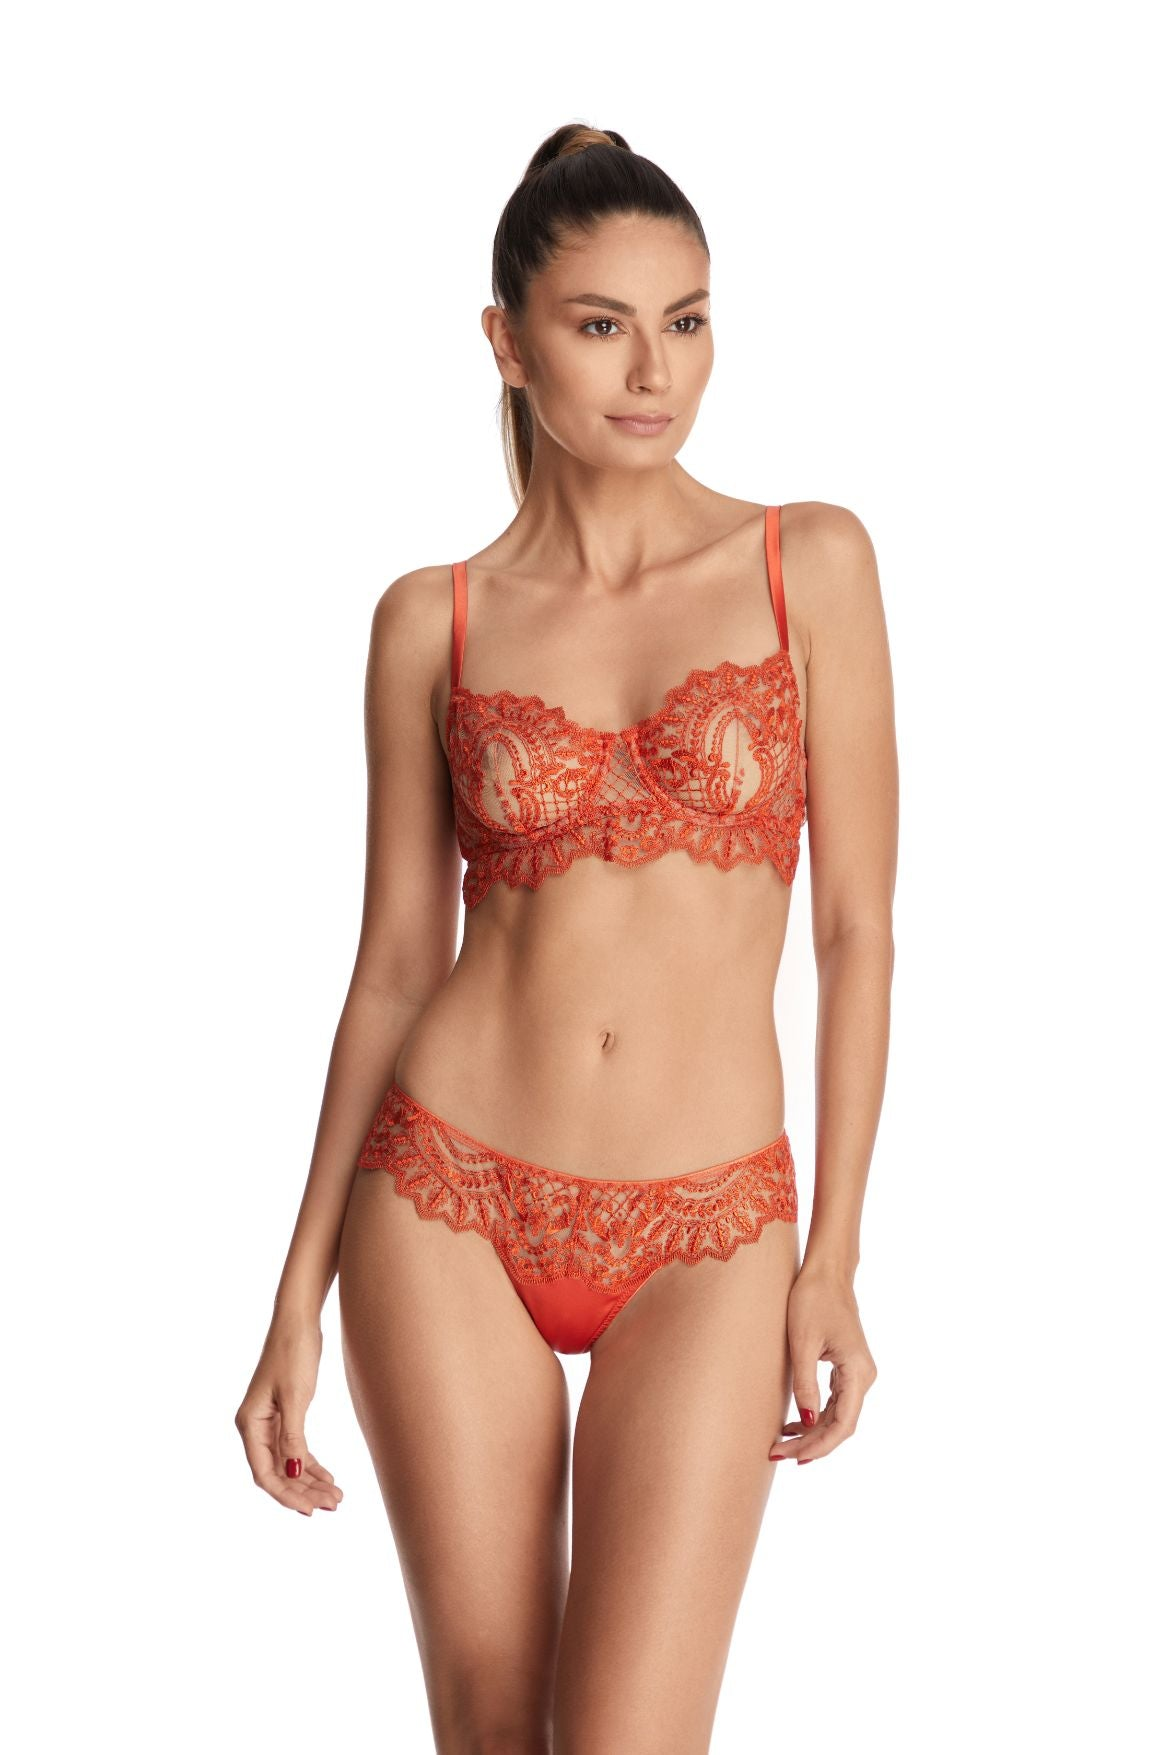 Petit Matin Balconette Bra in Vermillion Orange